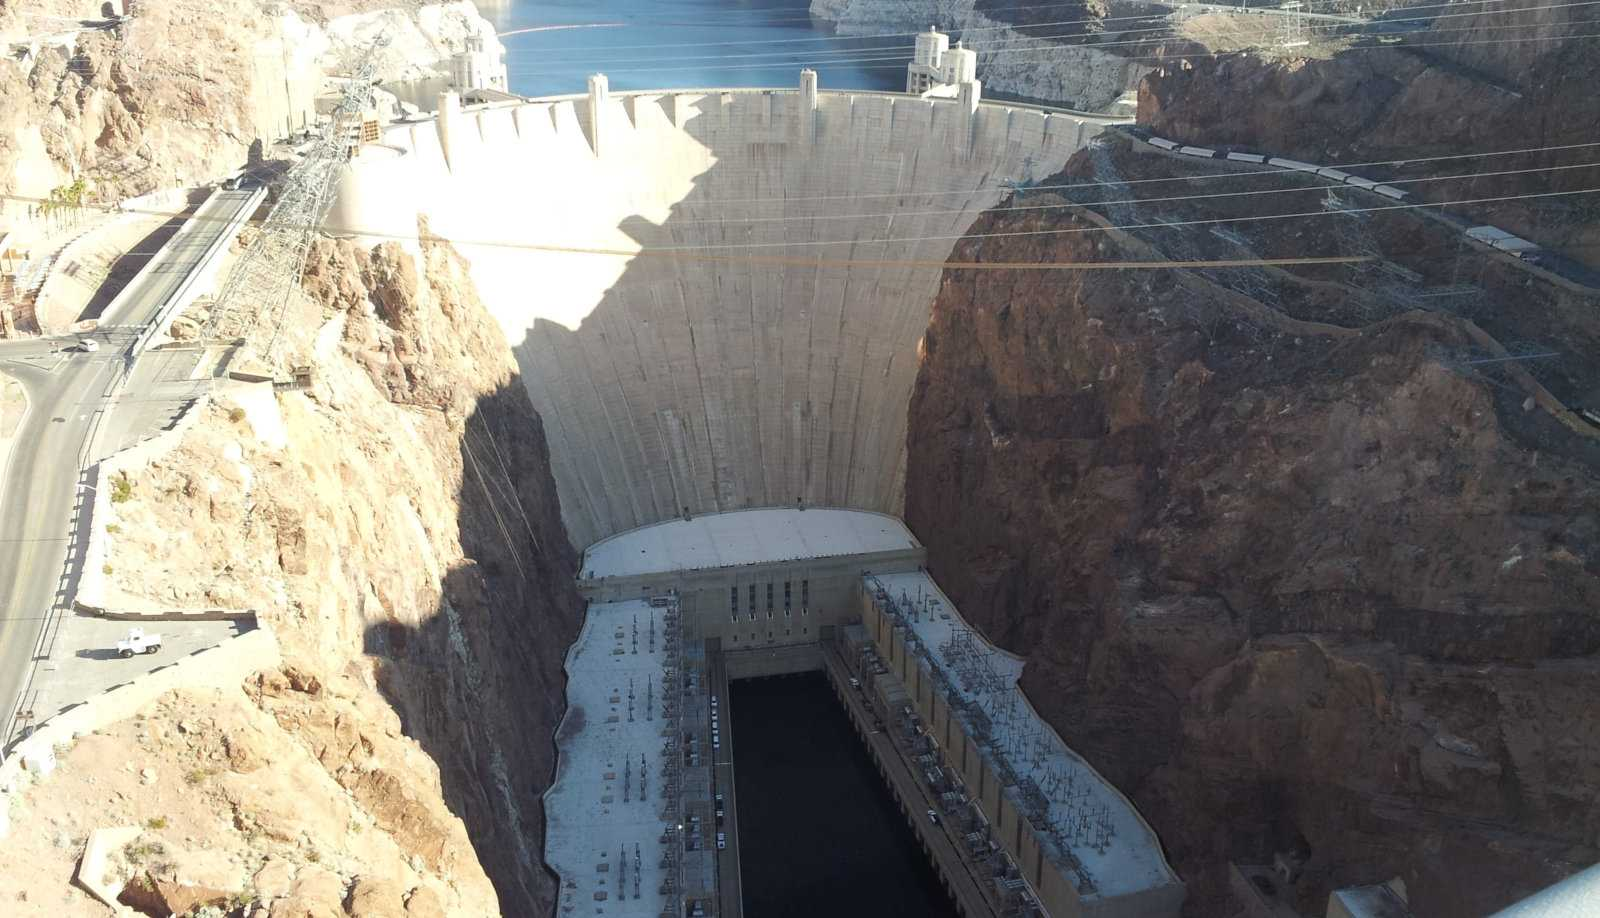 The real-life Hoover Dam, which you can explore up close while playing Fallout New Vegas.